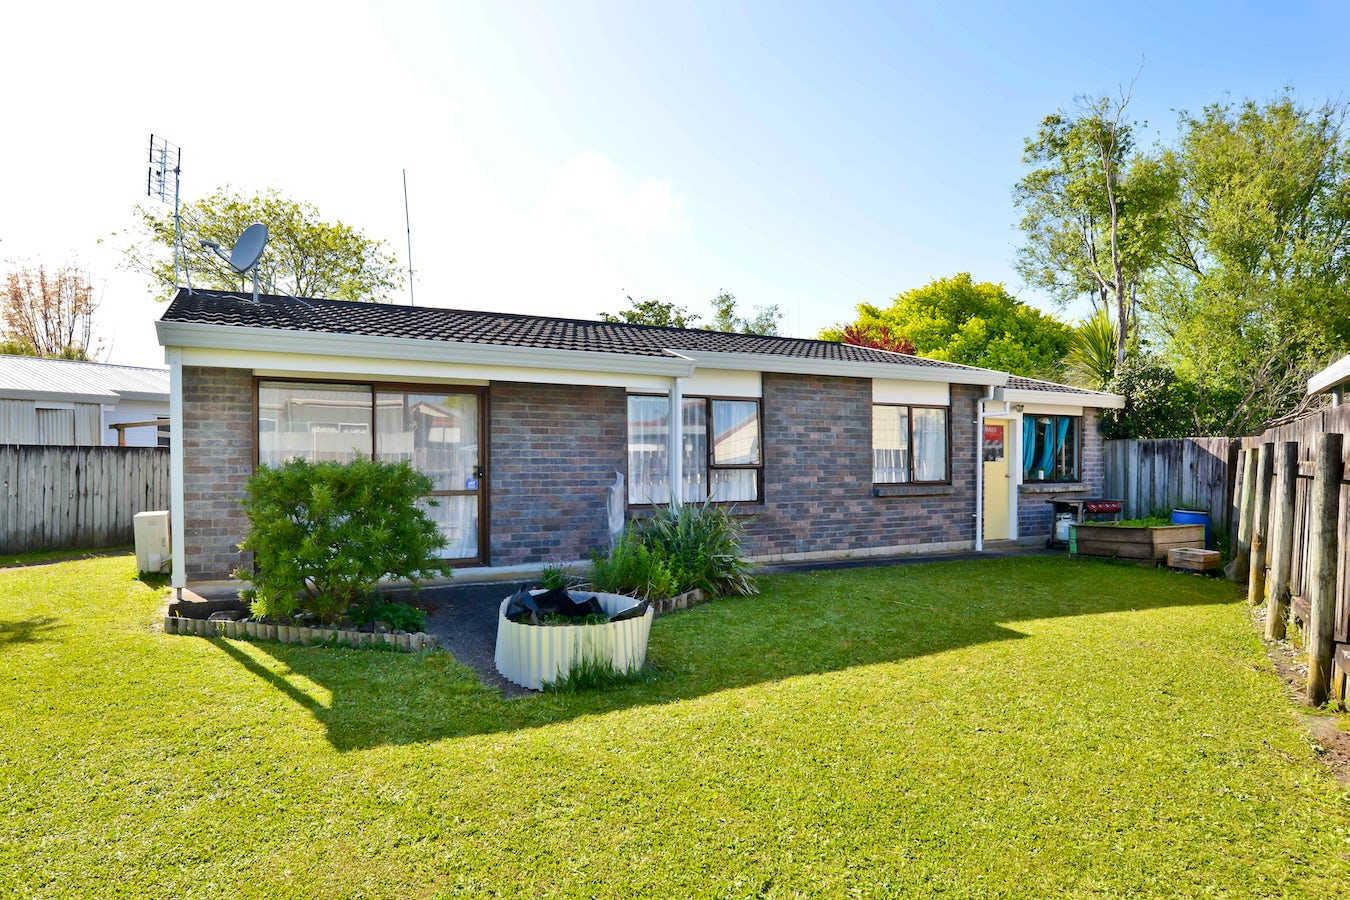 7A Reeves Close Fairview Downs | Lugton's Real Estate - NZ